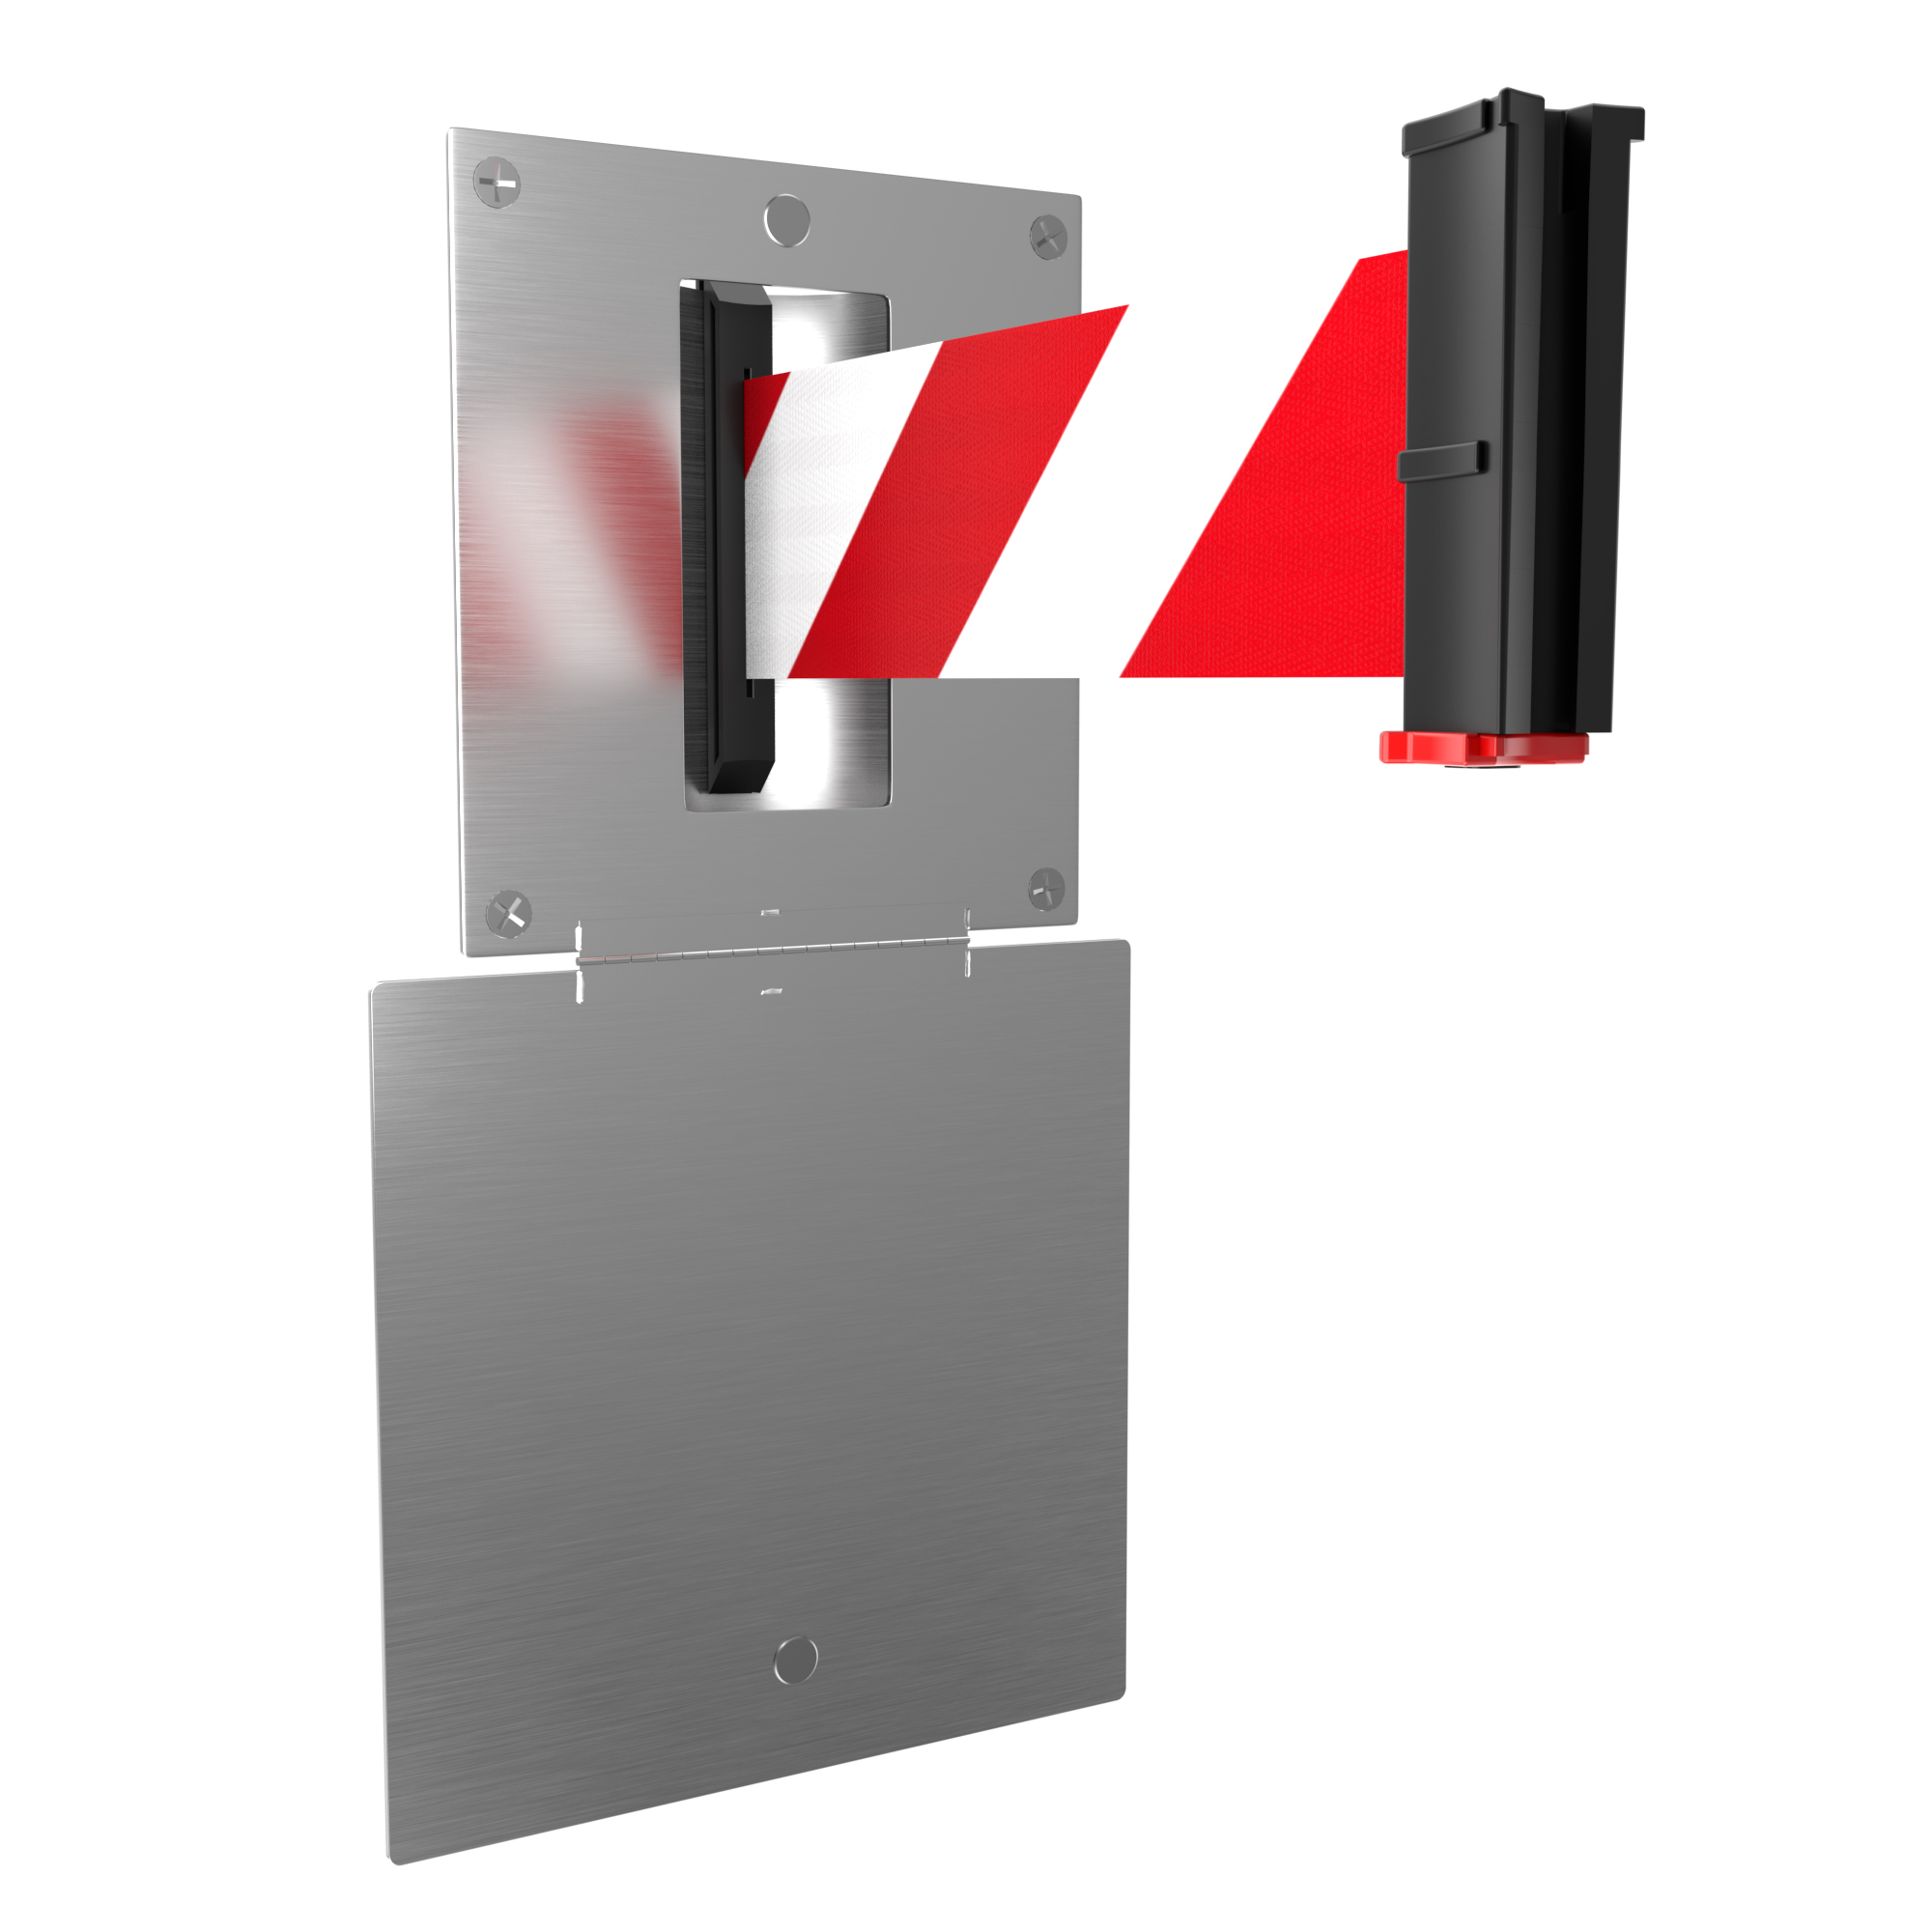 Recessed Wall Mount Holder with Door for Retractable Belt Wall Barriers